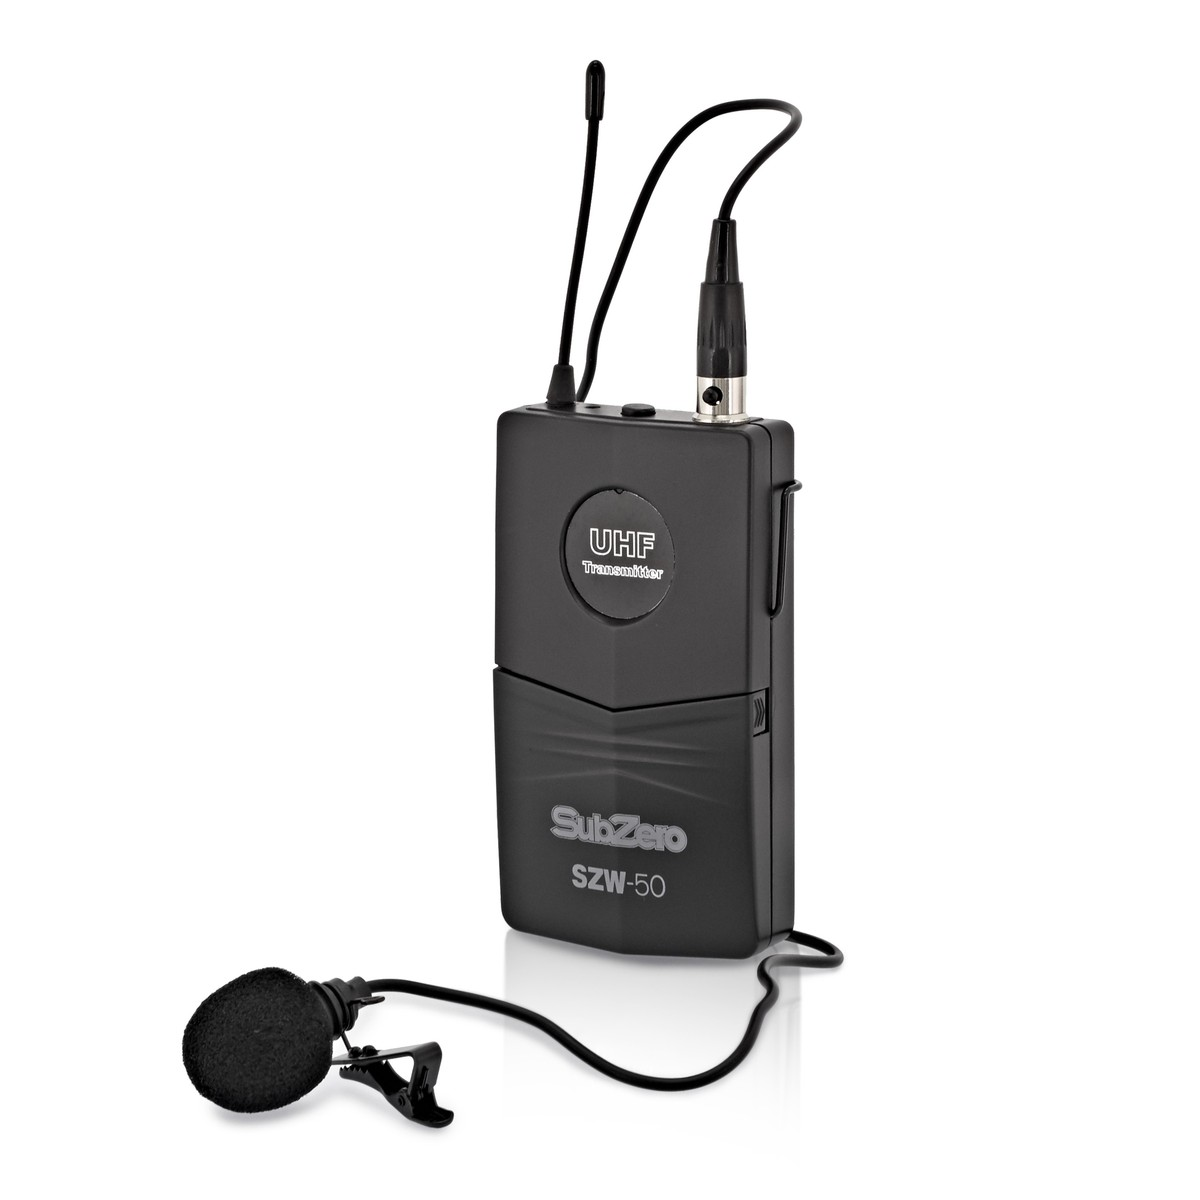 subzero szw 50 lavalier and headset wireless microphone system at gear4music. Black Bedroom Furniture Sets. Home Design Ideas